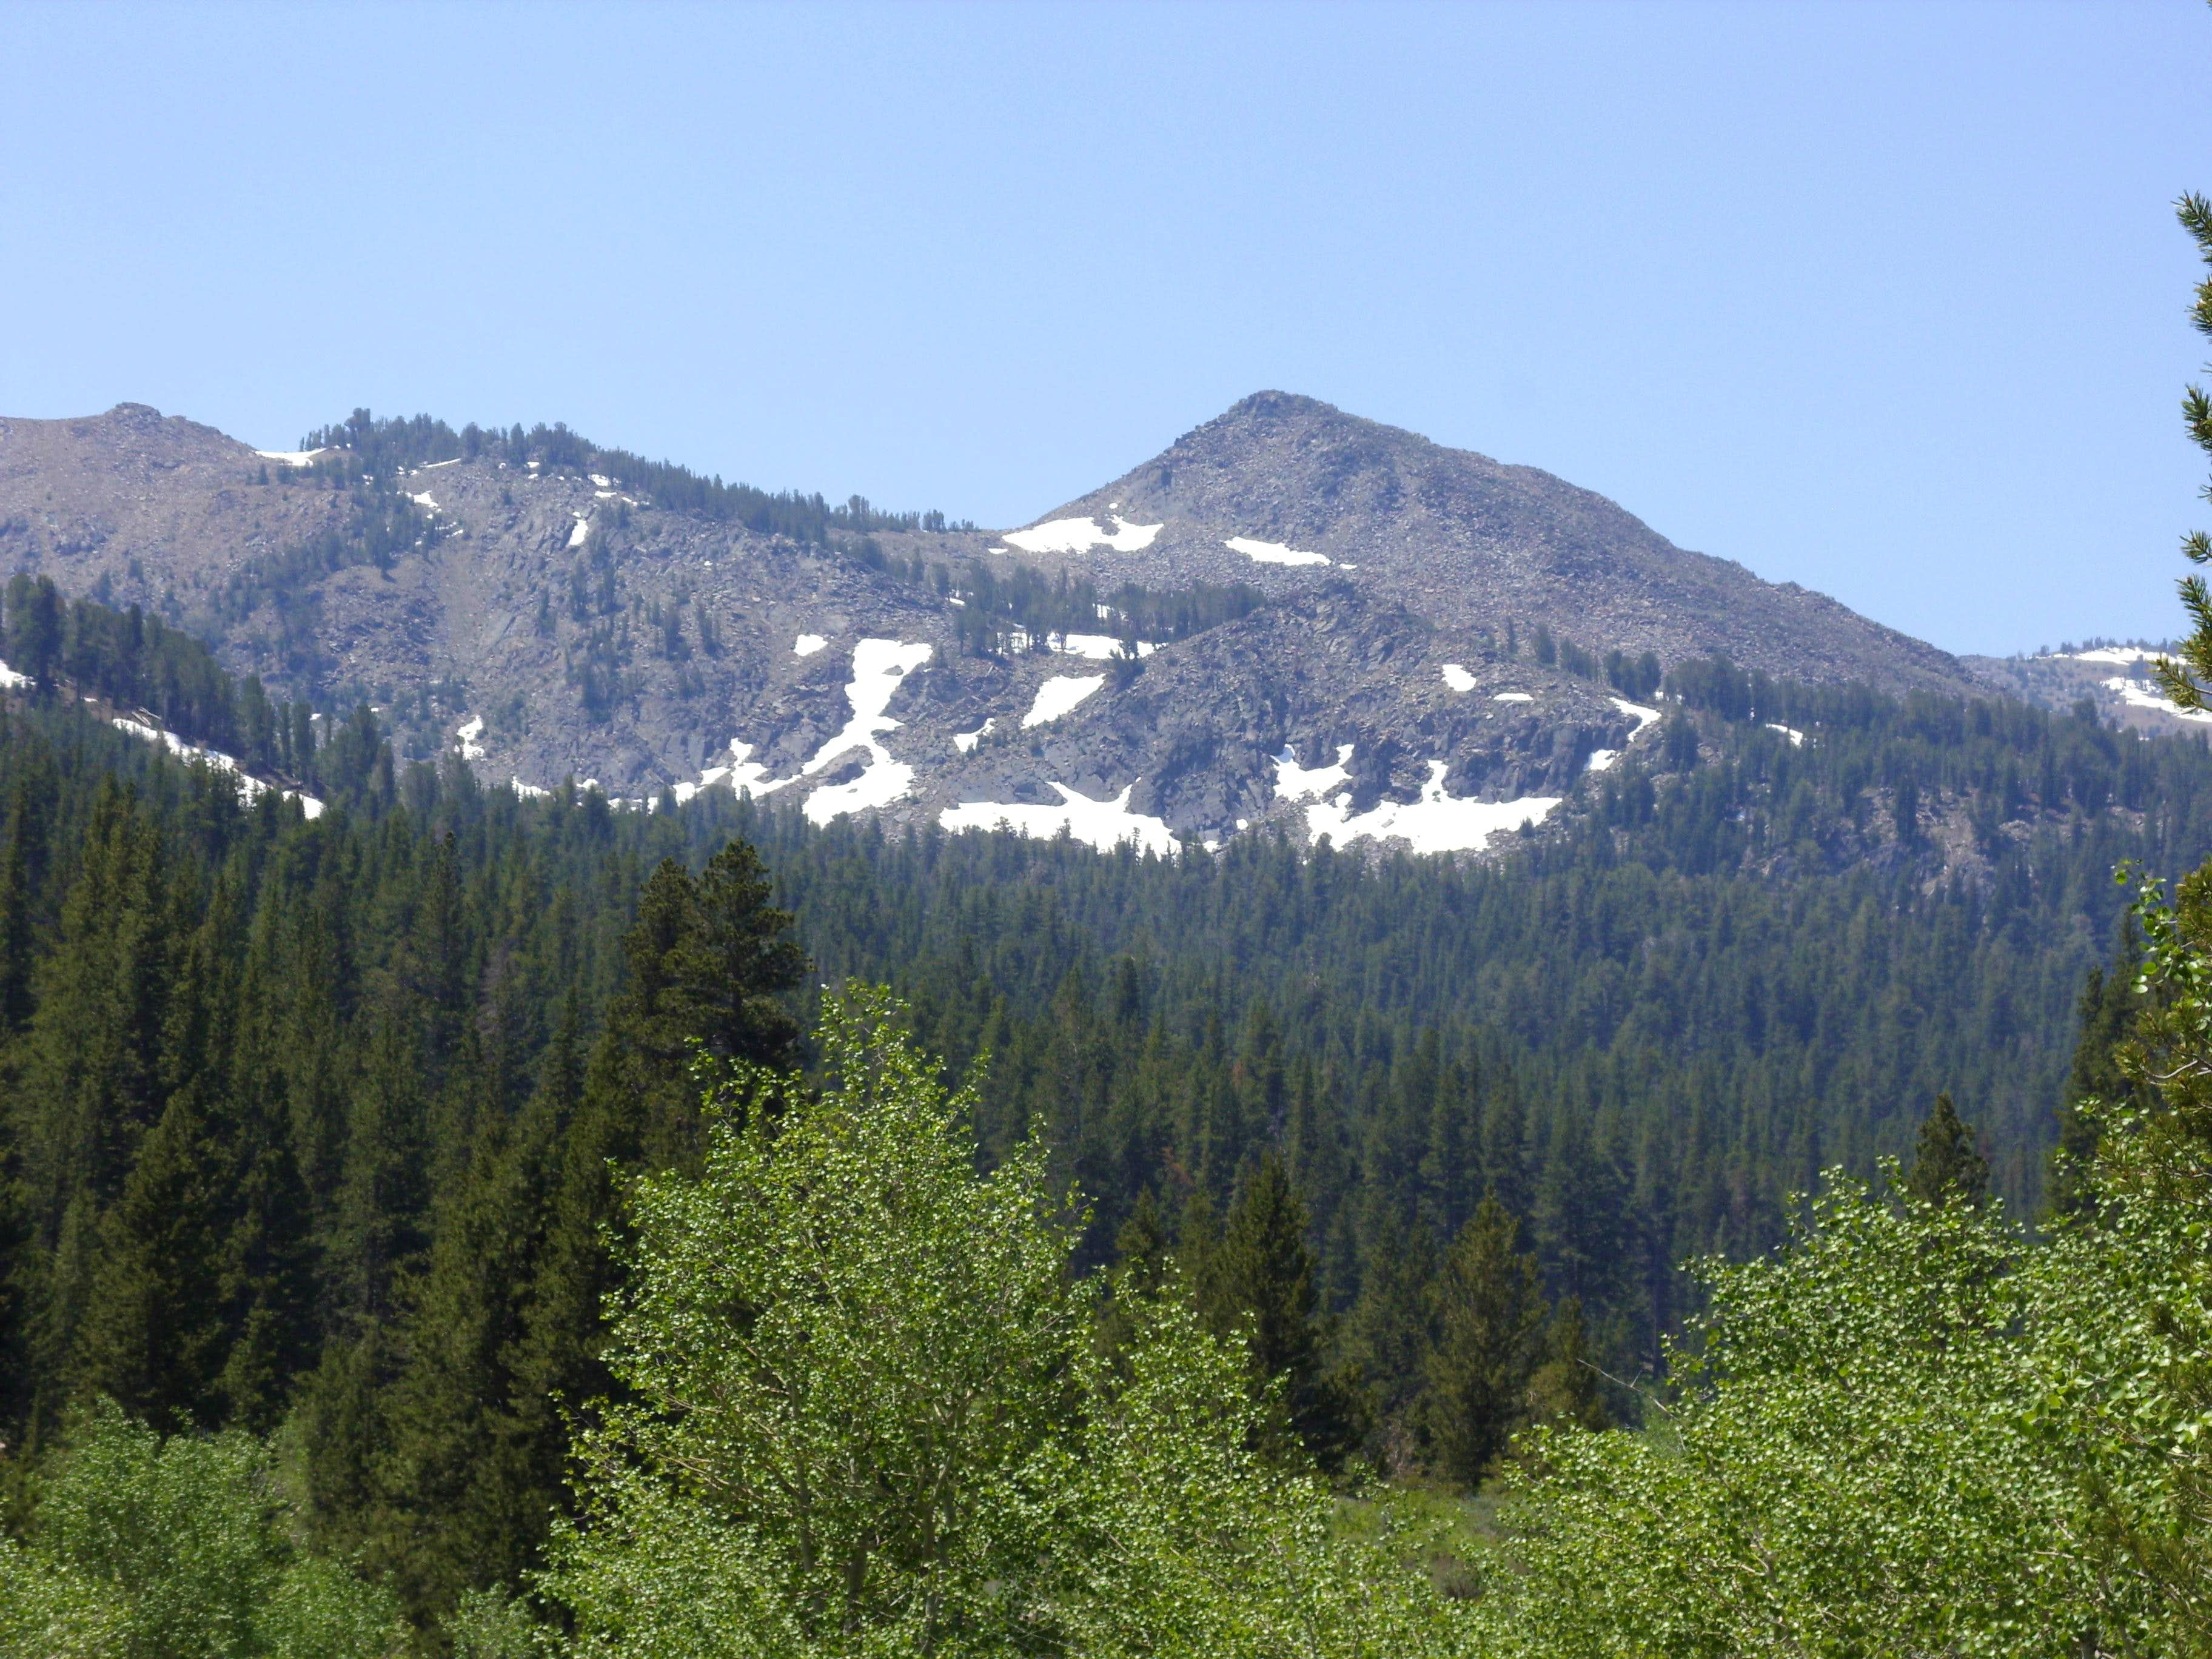 Peak 10430 – Hoover Wilderness